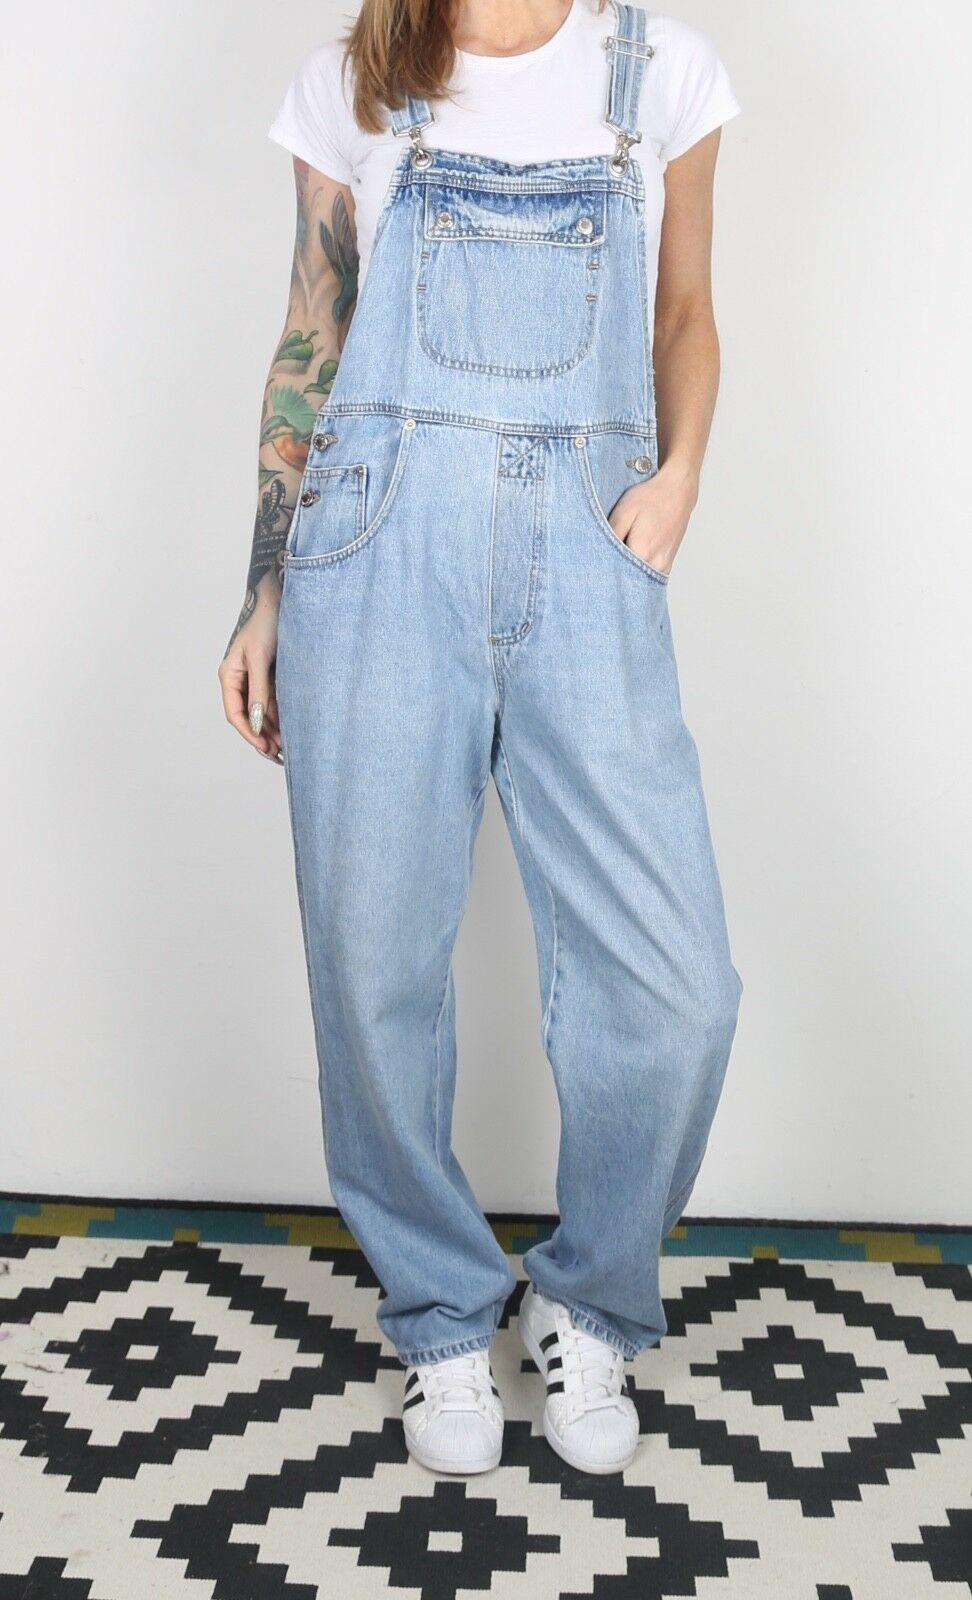 Denim Dungarees Medium Fitted 10 Small Oversized Wide Leg  (X2H)